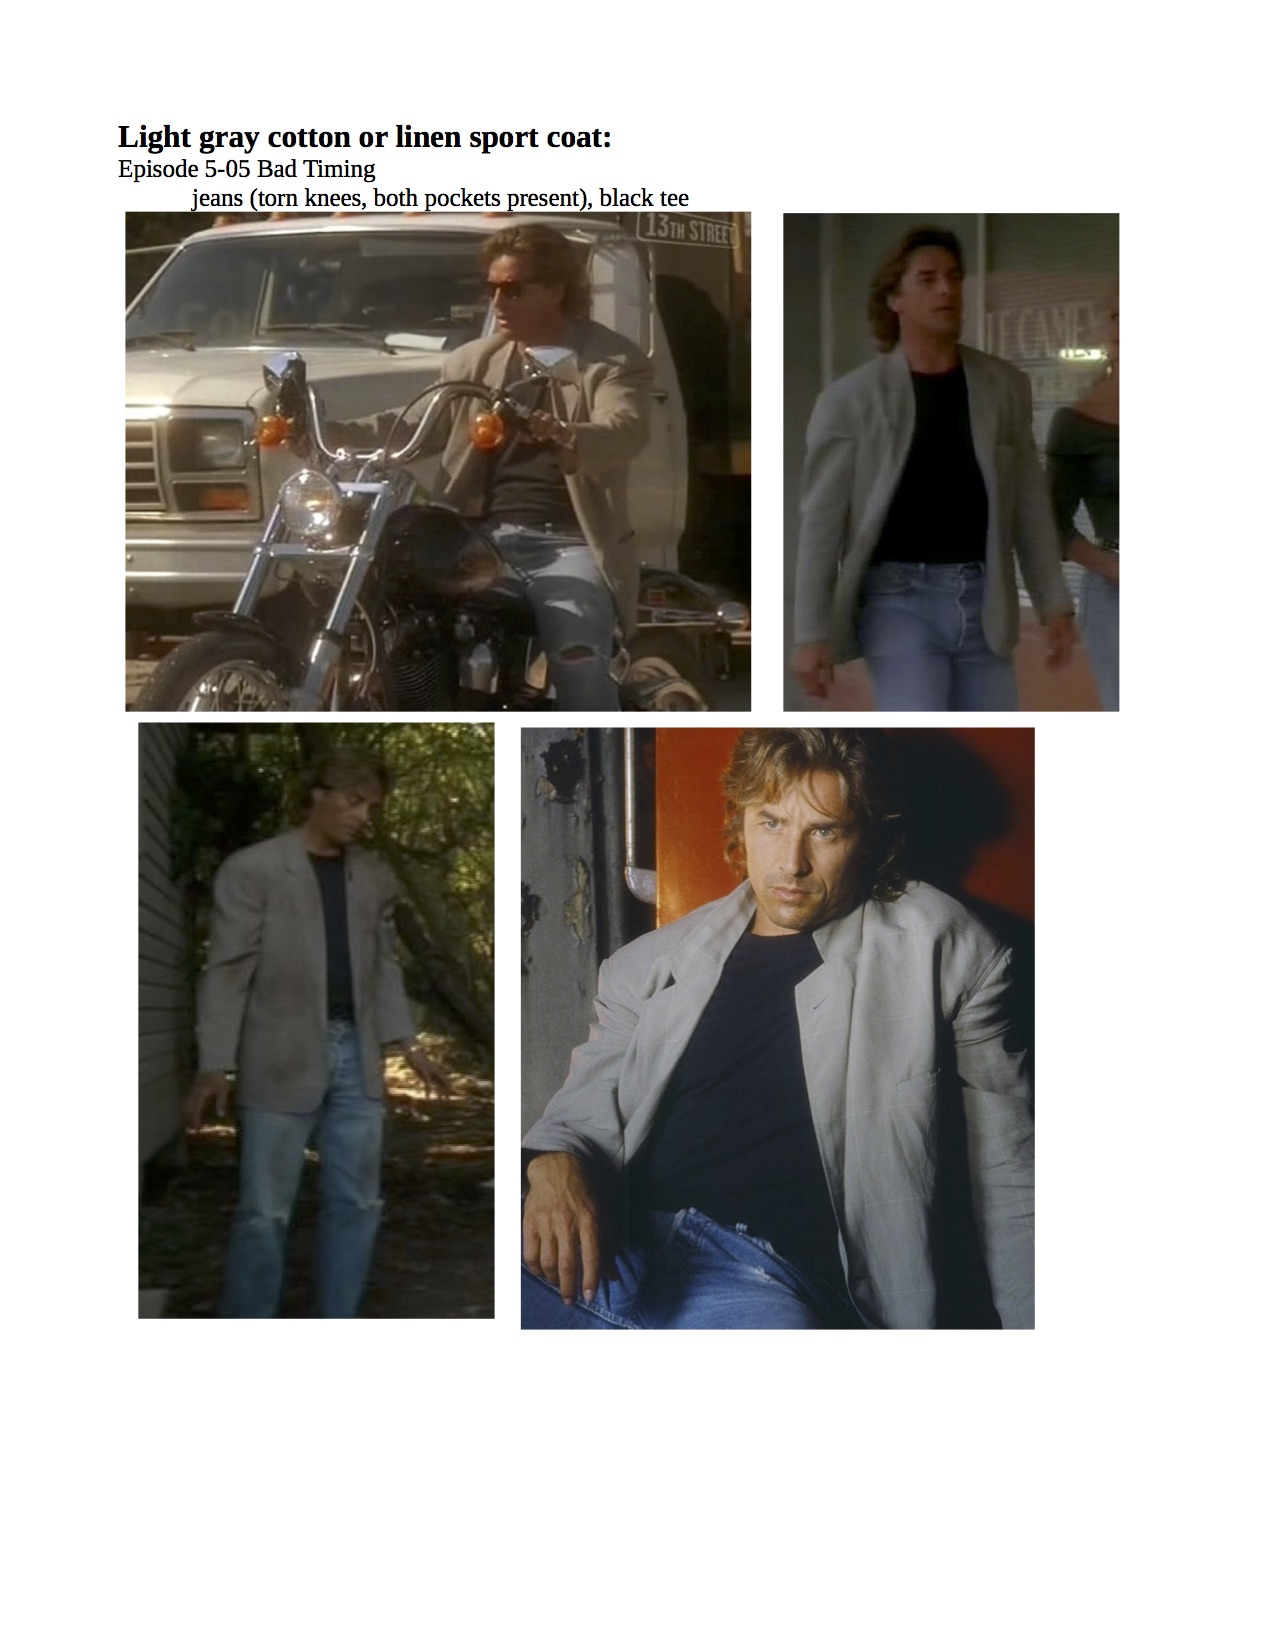 5th season crockett fashion - page 2 - miami vice fashion